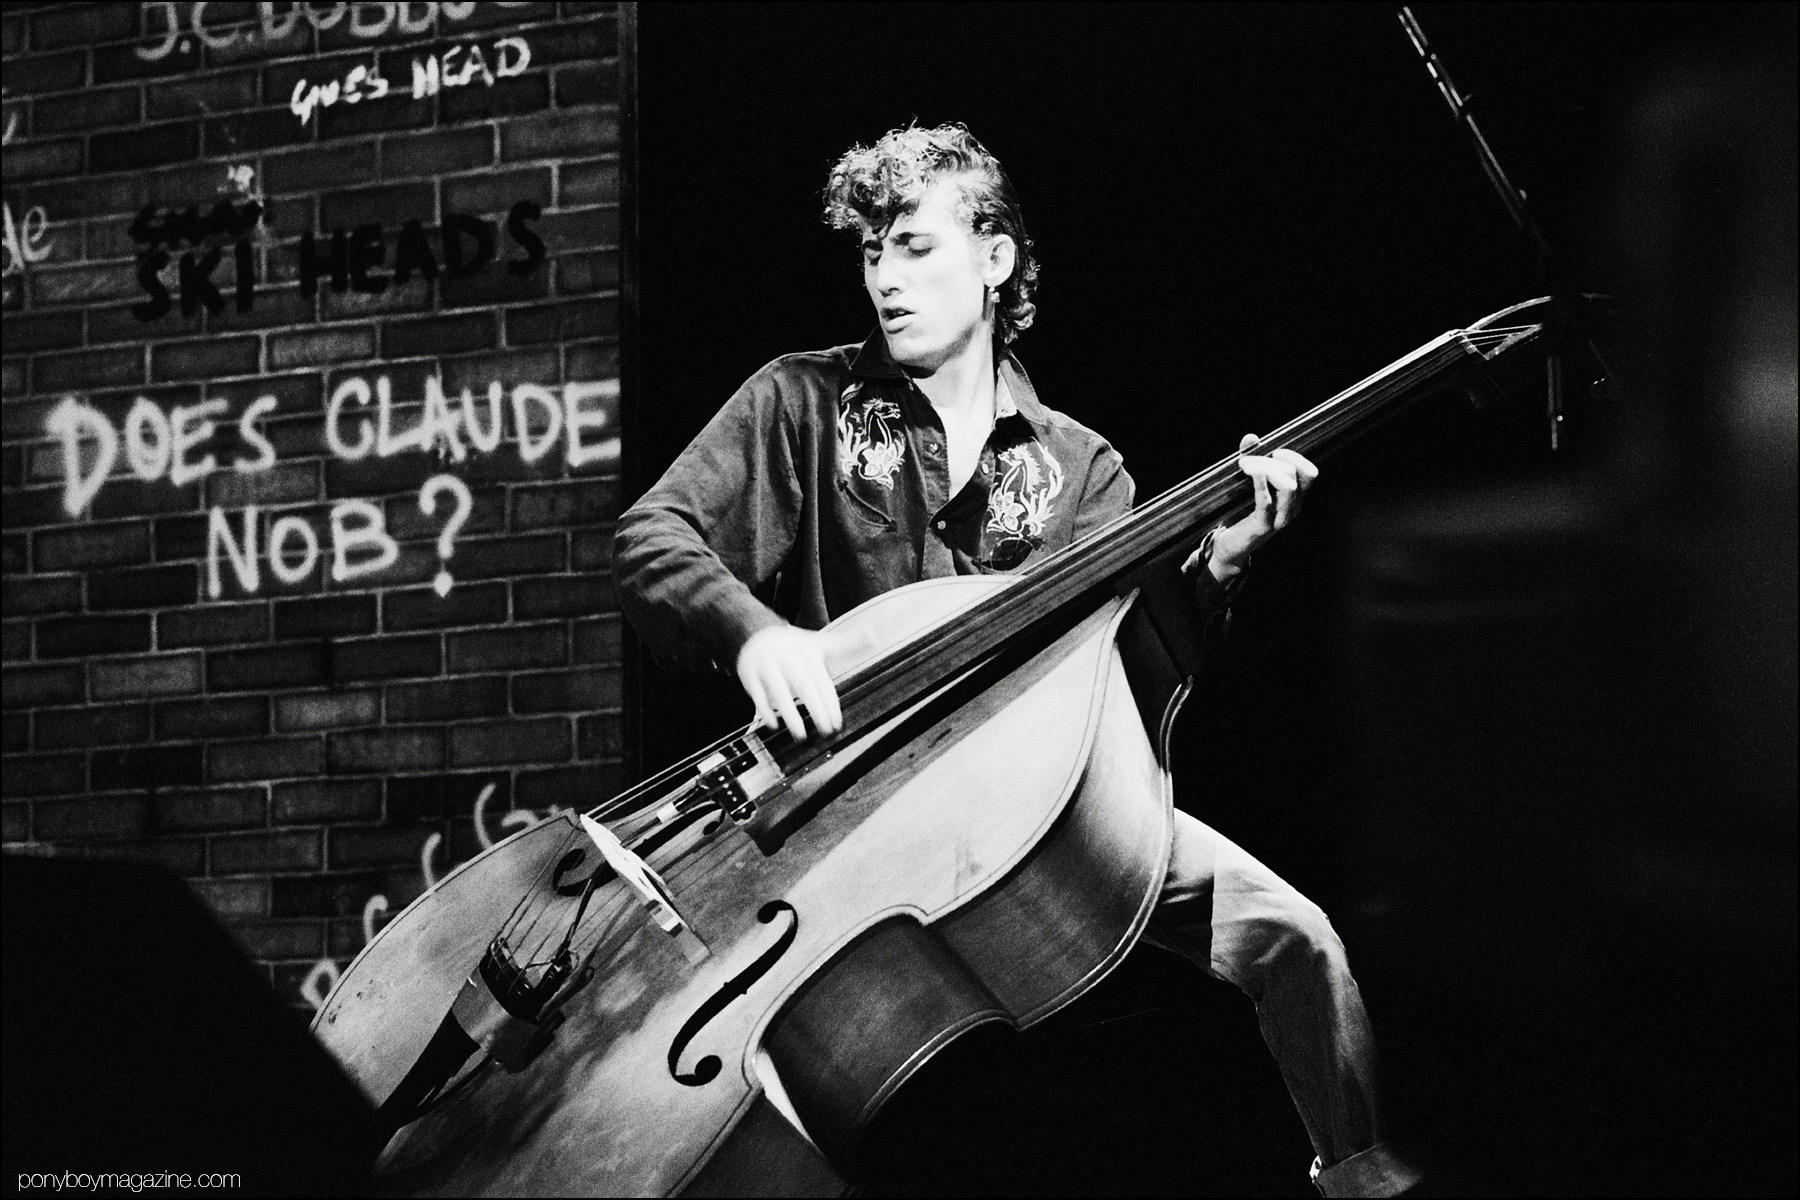 Rockabilly bassist Lee Rocker, from the Stray Cats, photographed by Manfred Becker. Ponyboy magazine NY.